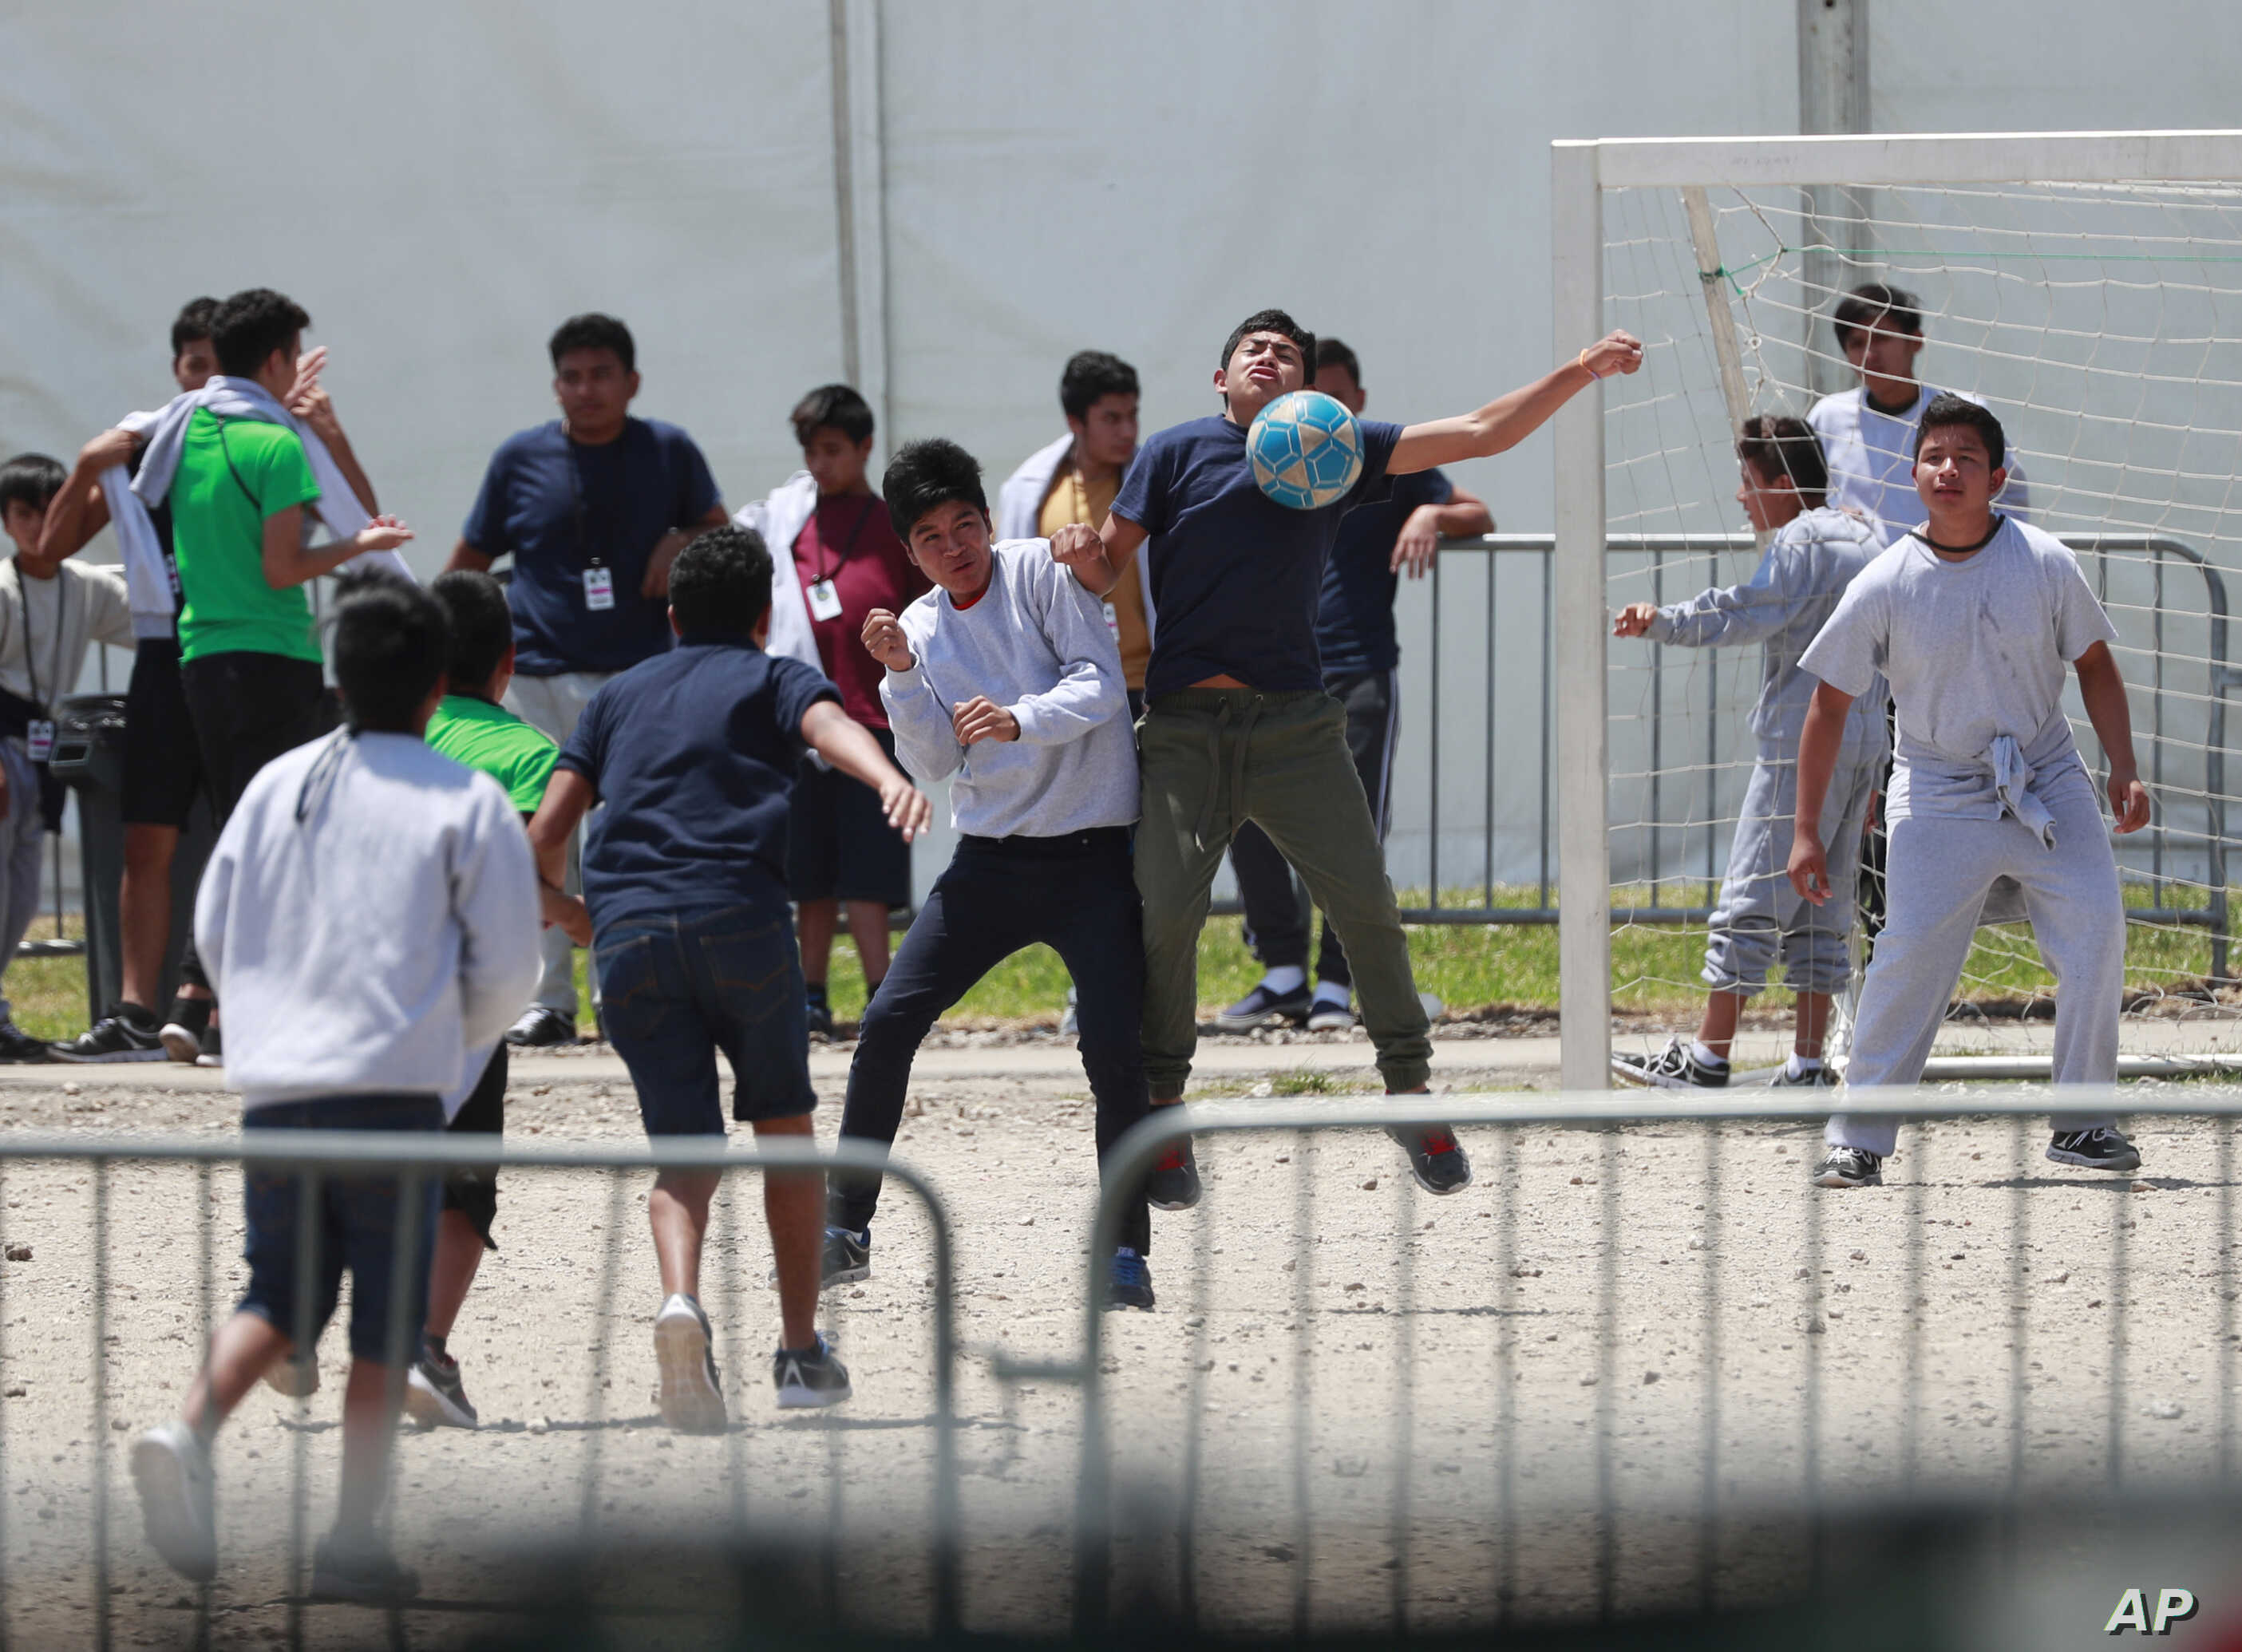 FILE - Migrant children play soccer at the Homestead Temporary Shelter for Unaccompanied Children in Homestead, Fla., April 19, 2019.